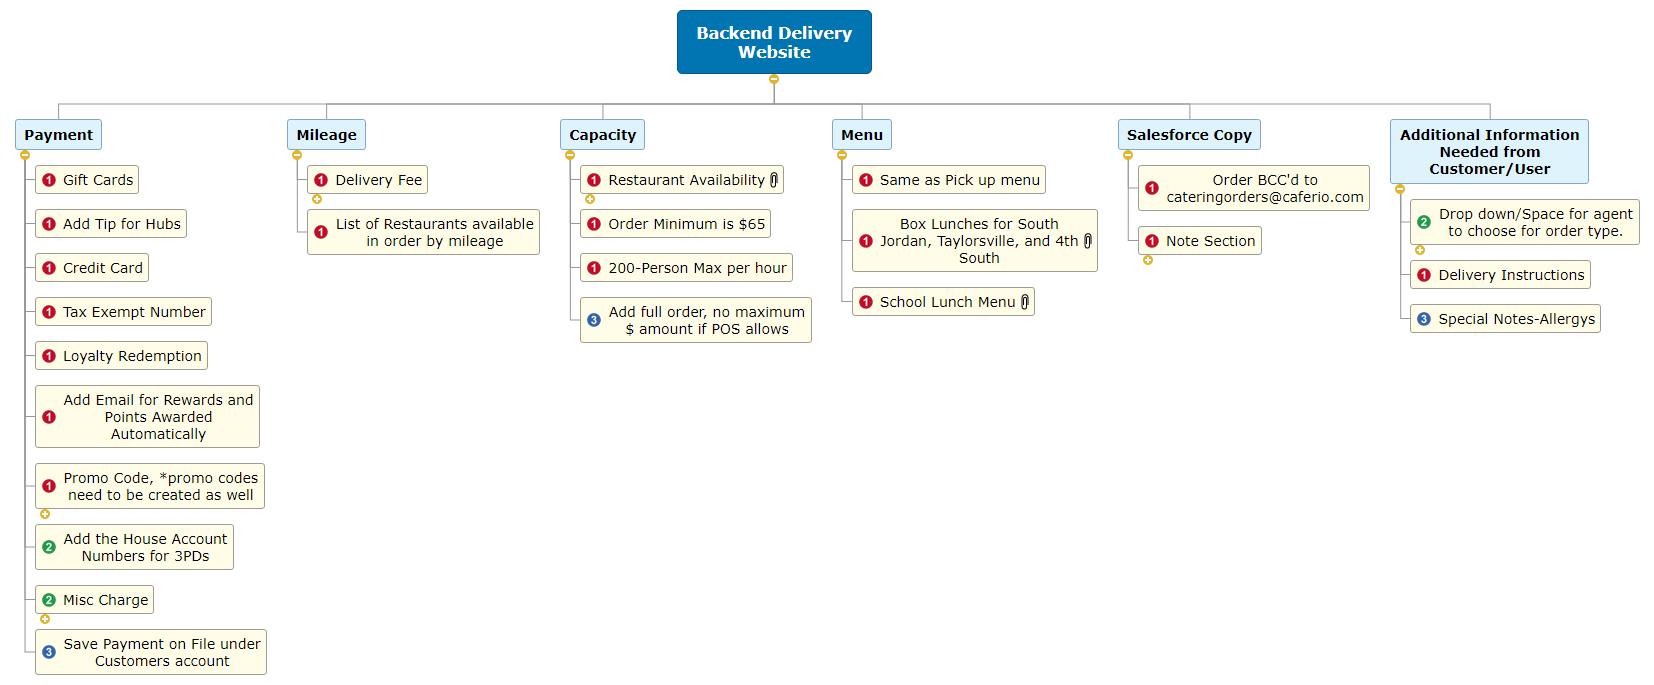 Backend Delivery Website WBS